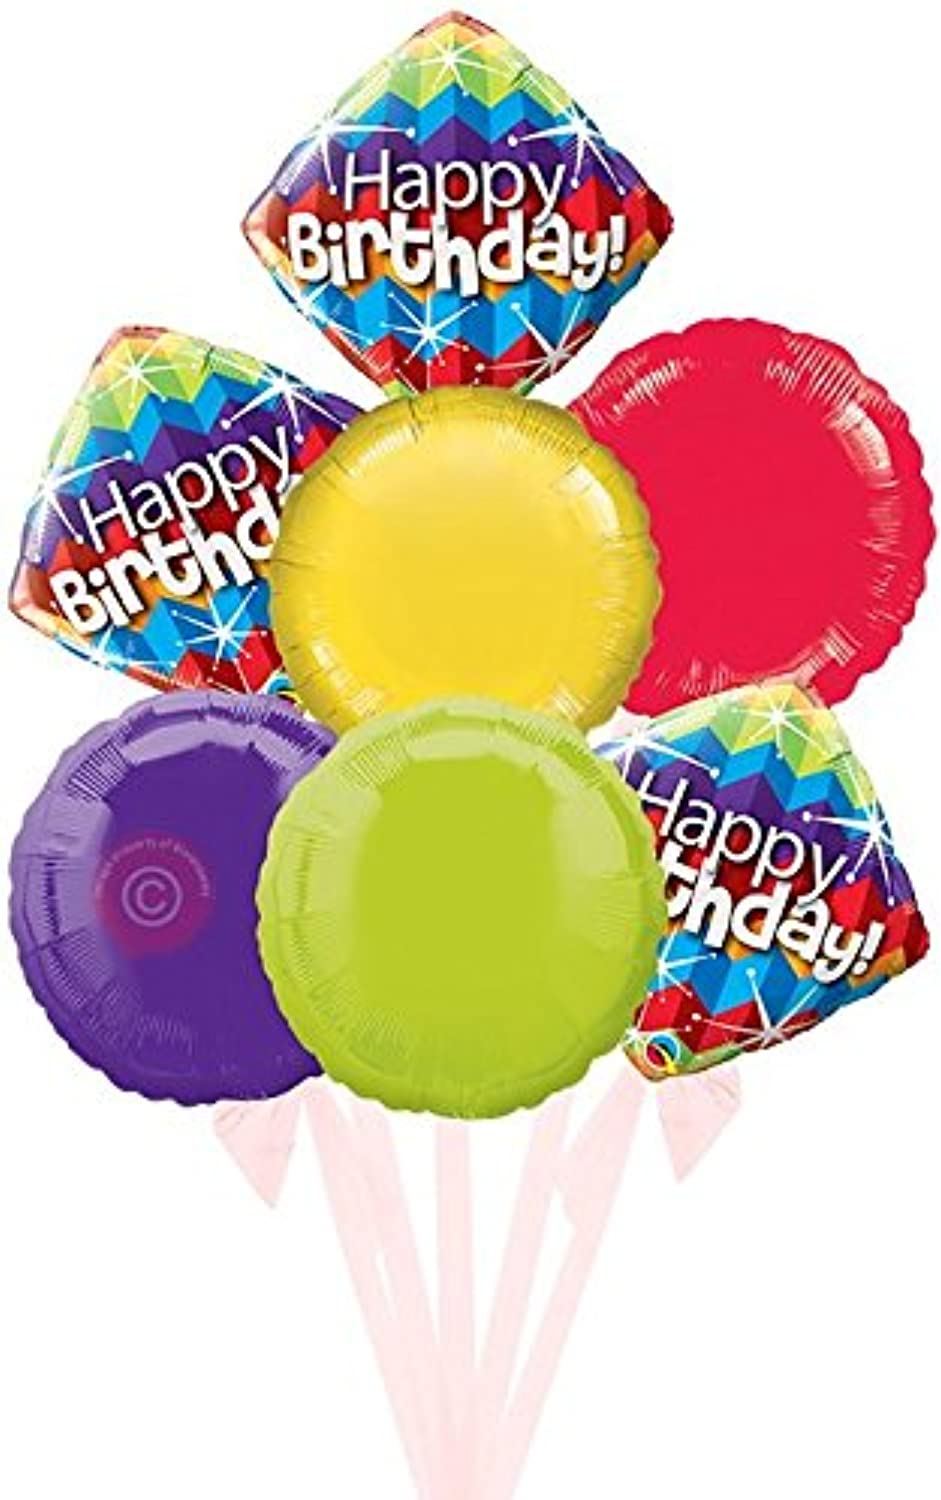 Happy Birthday Zig Zags and Starbursts  Inflated Birthday Helium Balloon Delivered in a Box  Bigger Bouquet  7 Balloons  Bloonaway